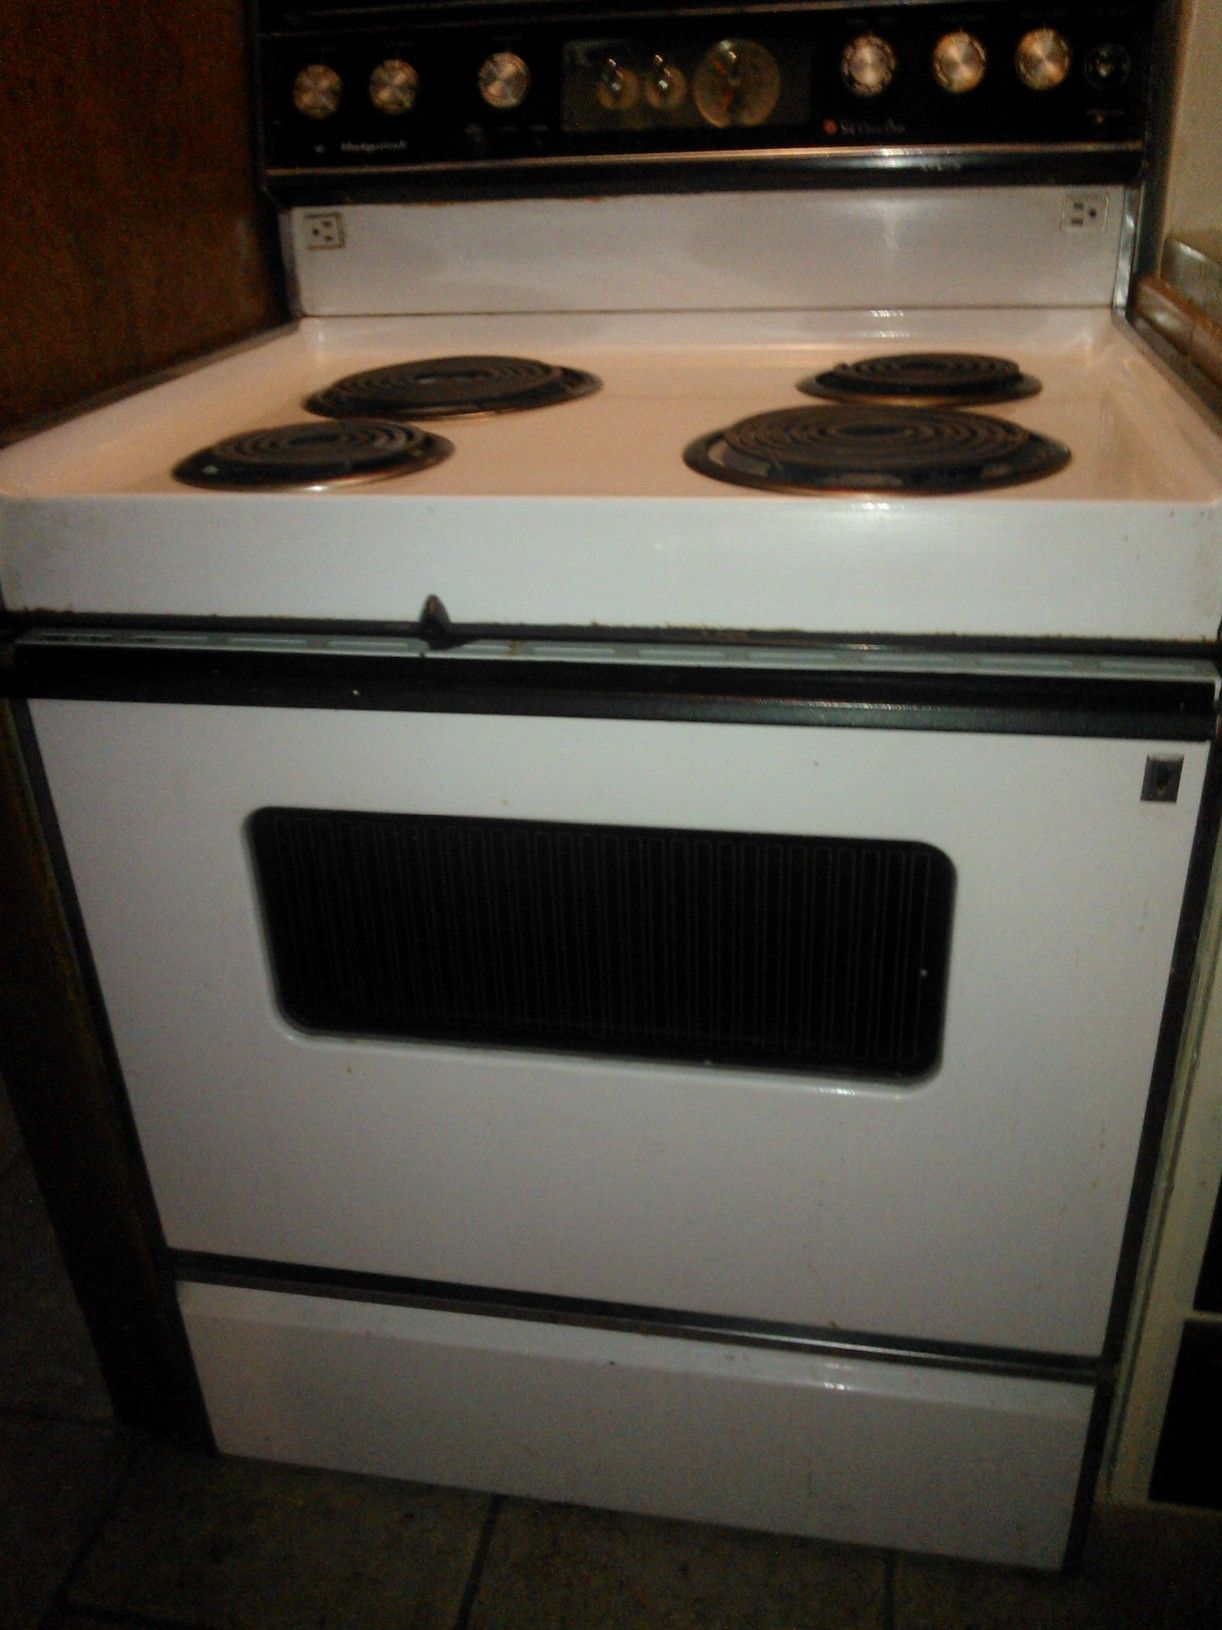 Whirlpool Electric Stove Glass Top Replacement Not Lossing Wiring Diagram Kenmore Elite Dryer Belt Free Engine Cooktop Cracked